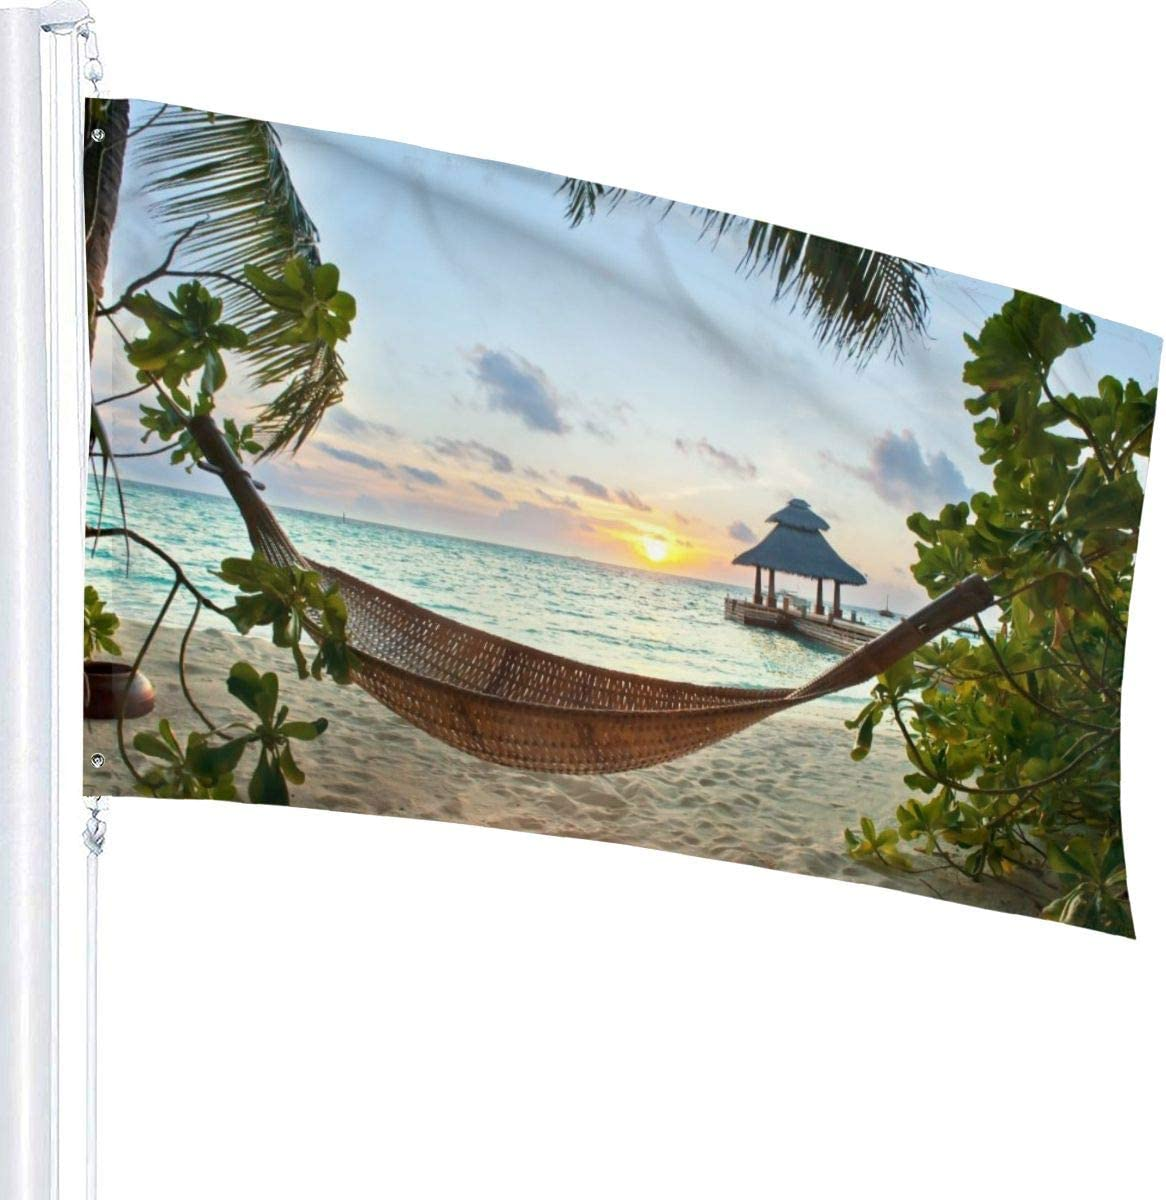 USA Guard Flag Banner Garden Flags Hammock On Sandy Beach Spring Outside Use Yard for Holidays Patio Lawn Decorative 3x5 Foot